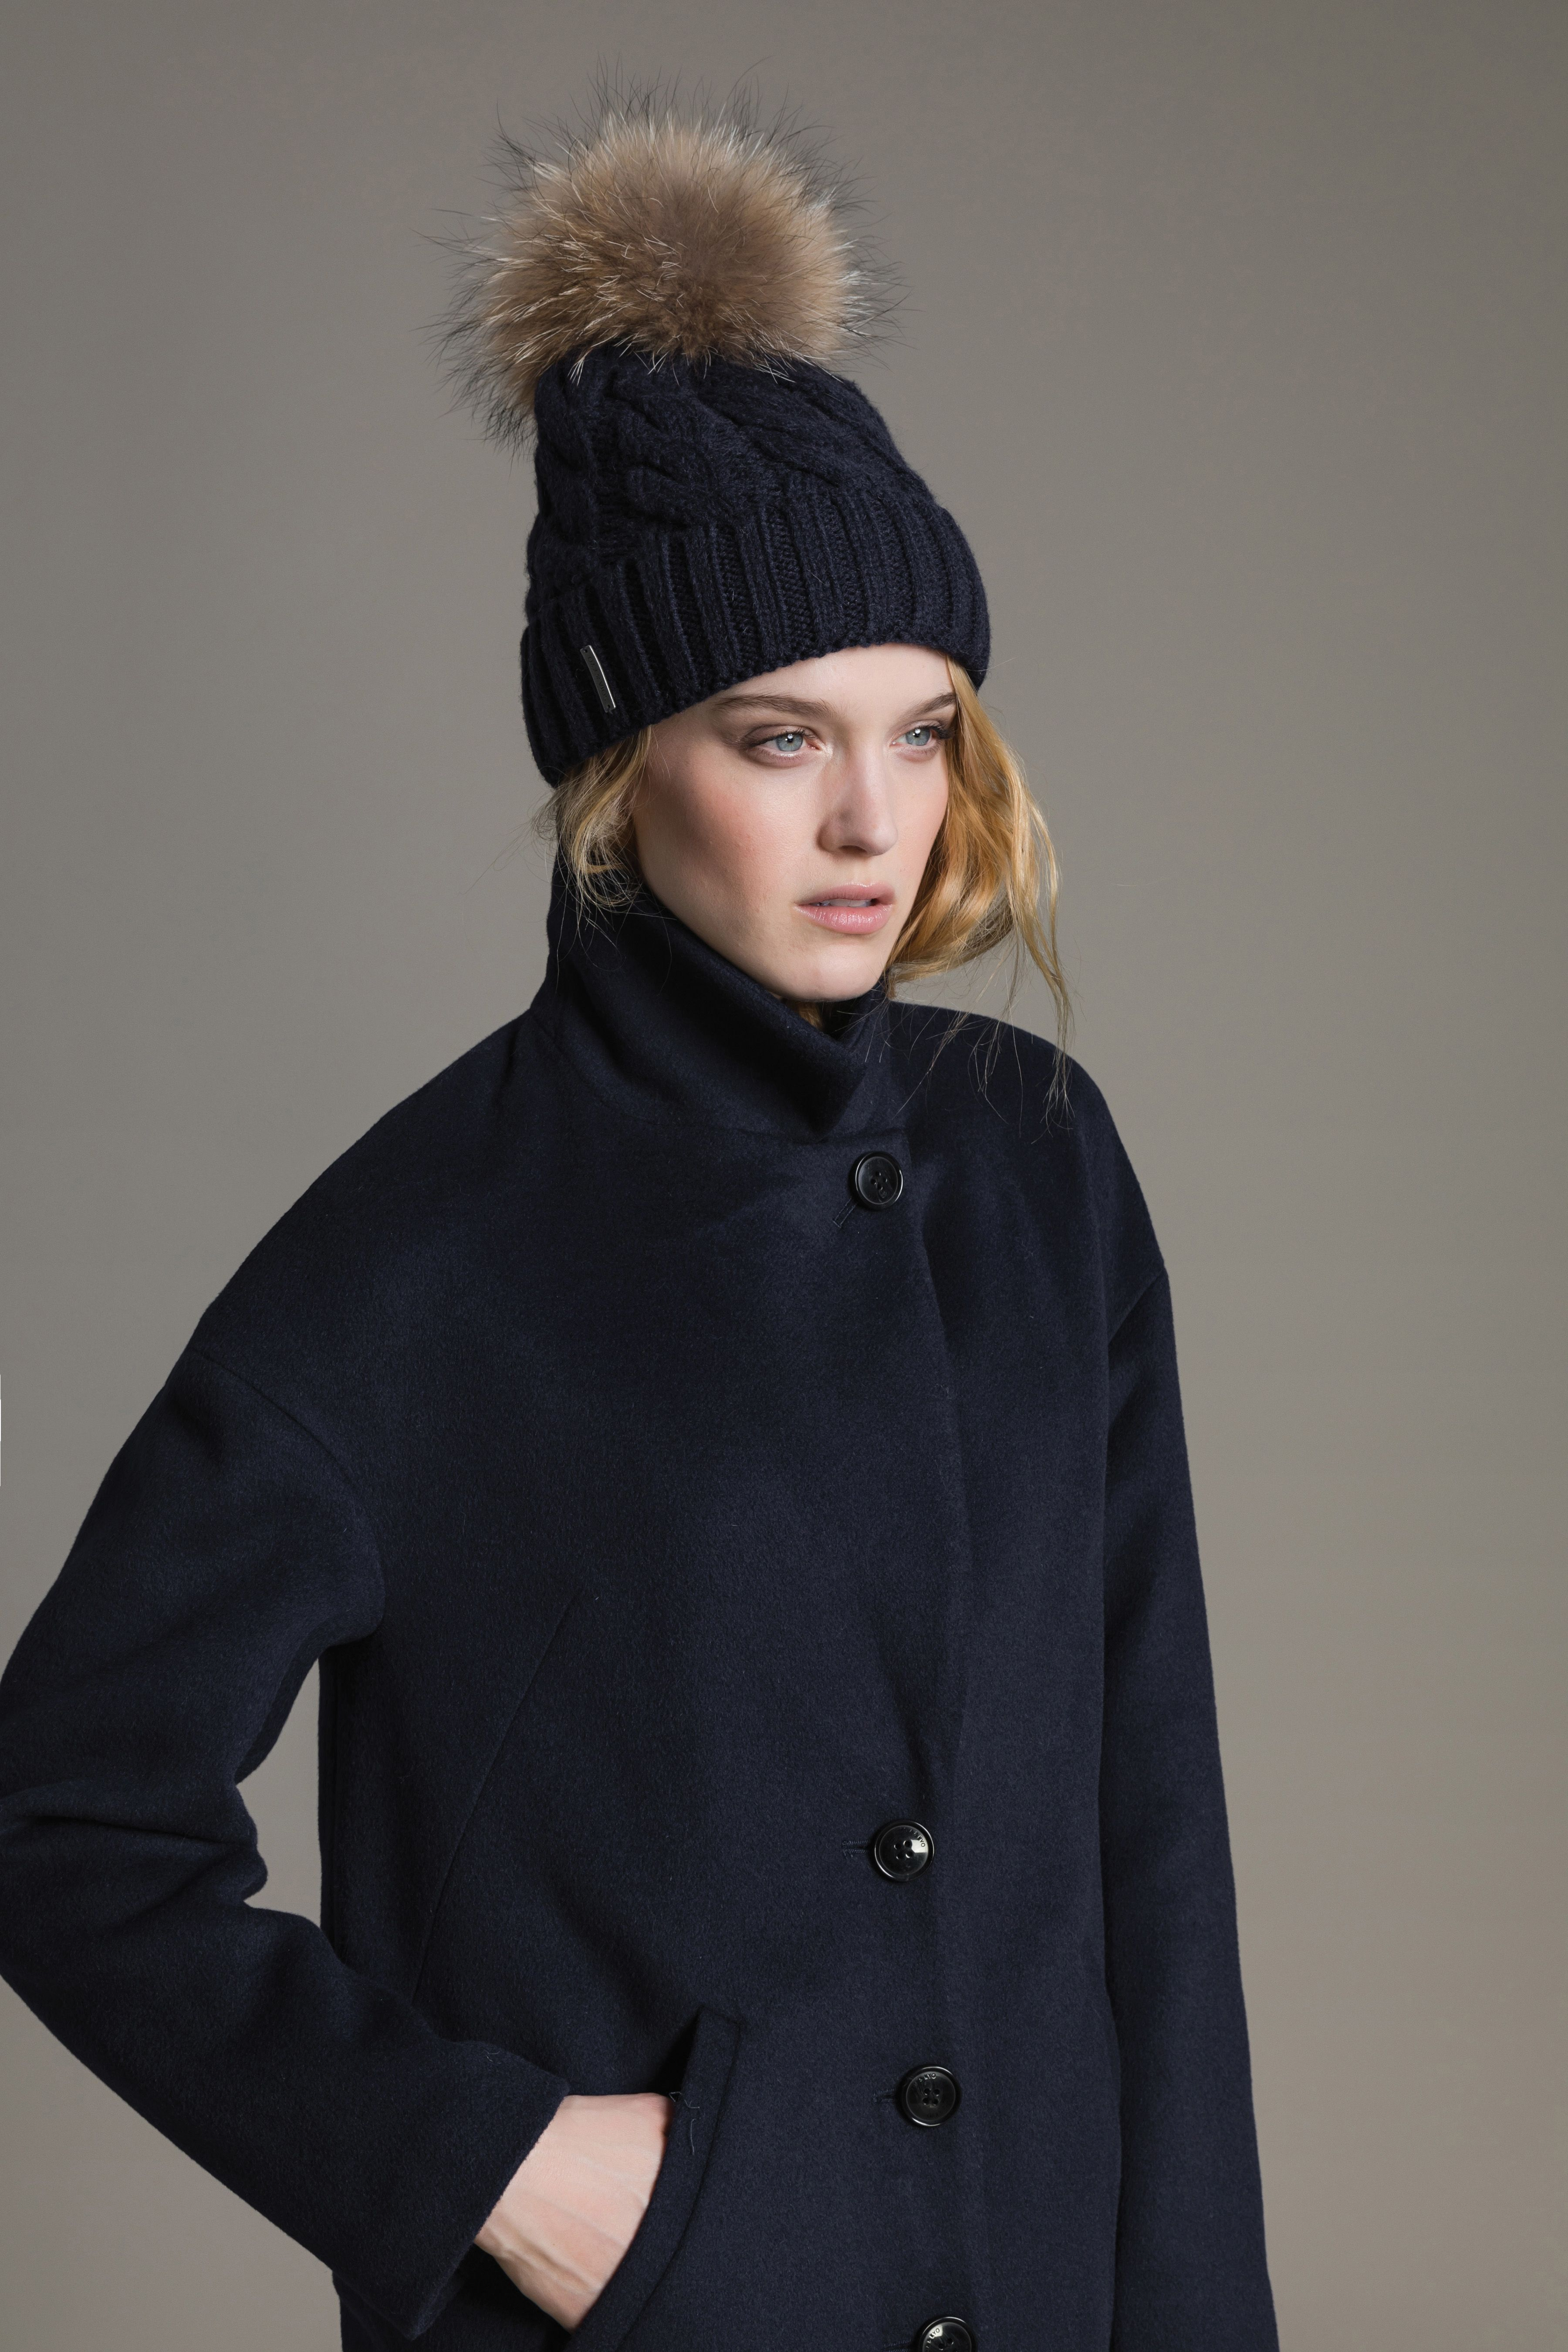 4addc393c56 AMALIE by SOIA   KYO is a cable knit hat with a removable natural fur pom  pom. Its classic folded rib knit hem frames the face and keeps your ears  toasty ...